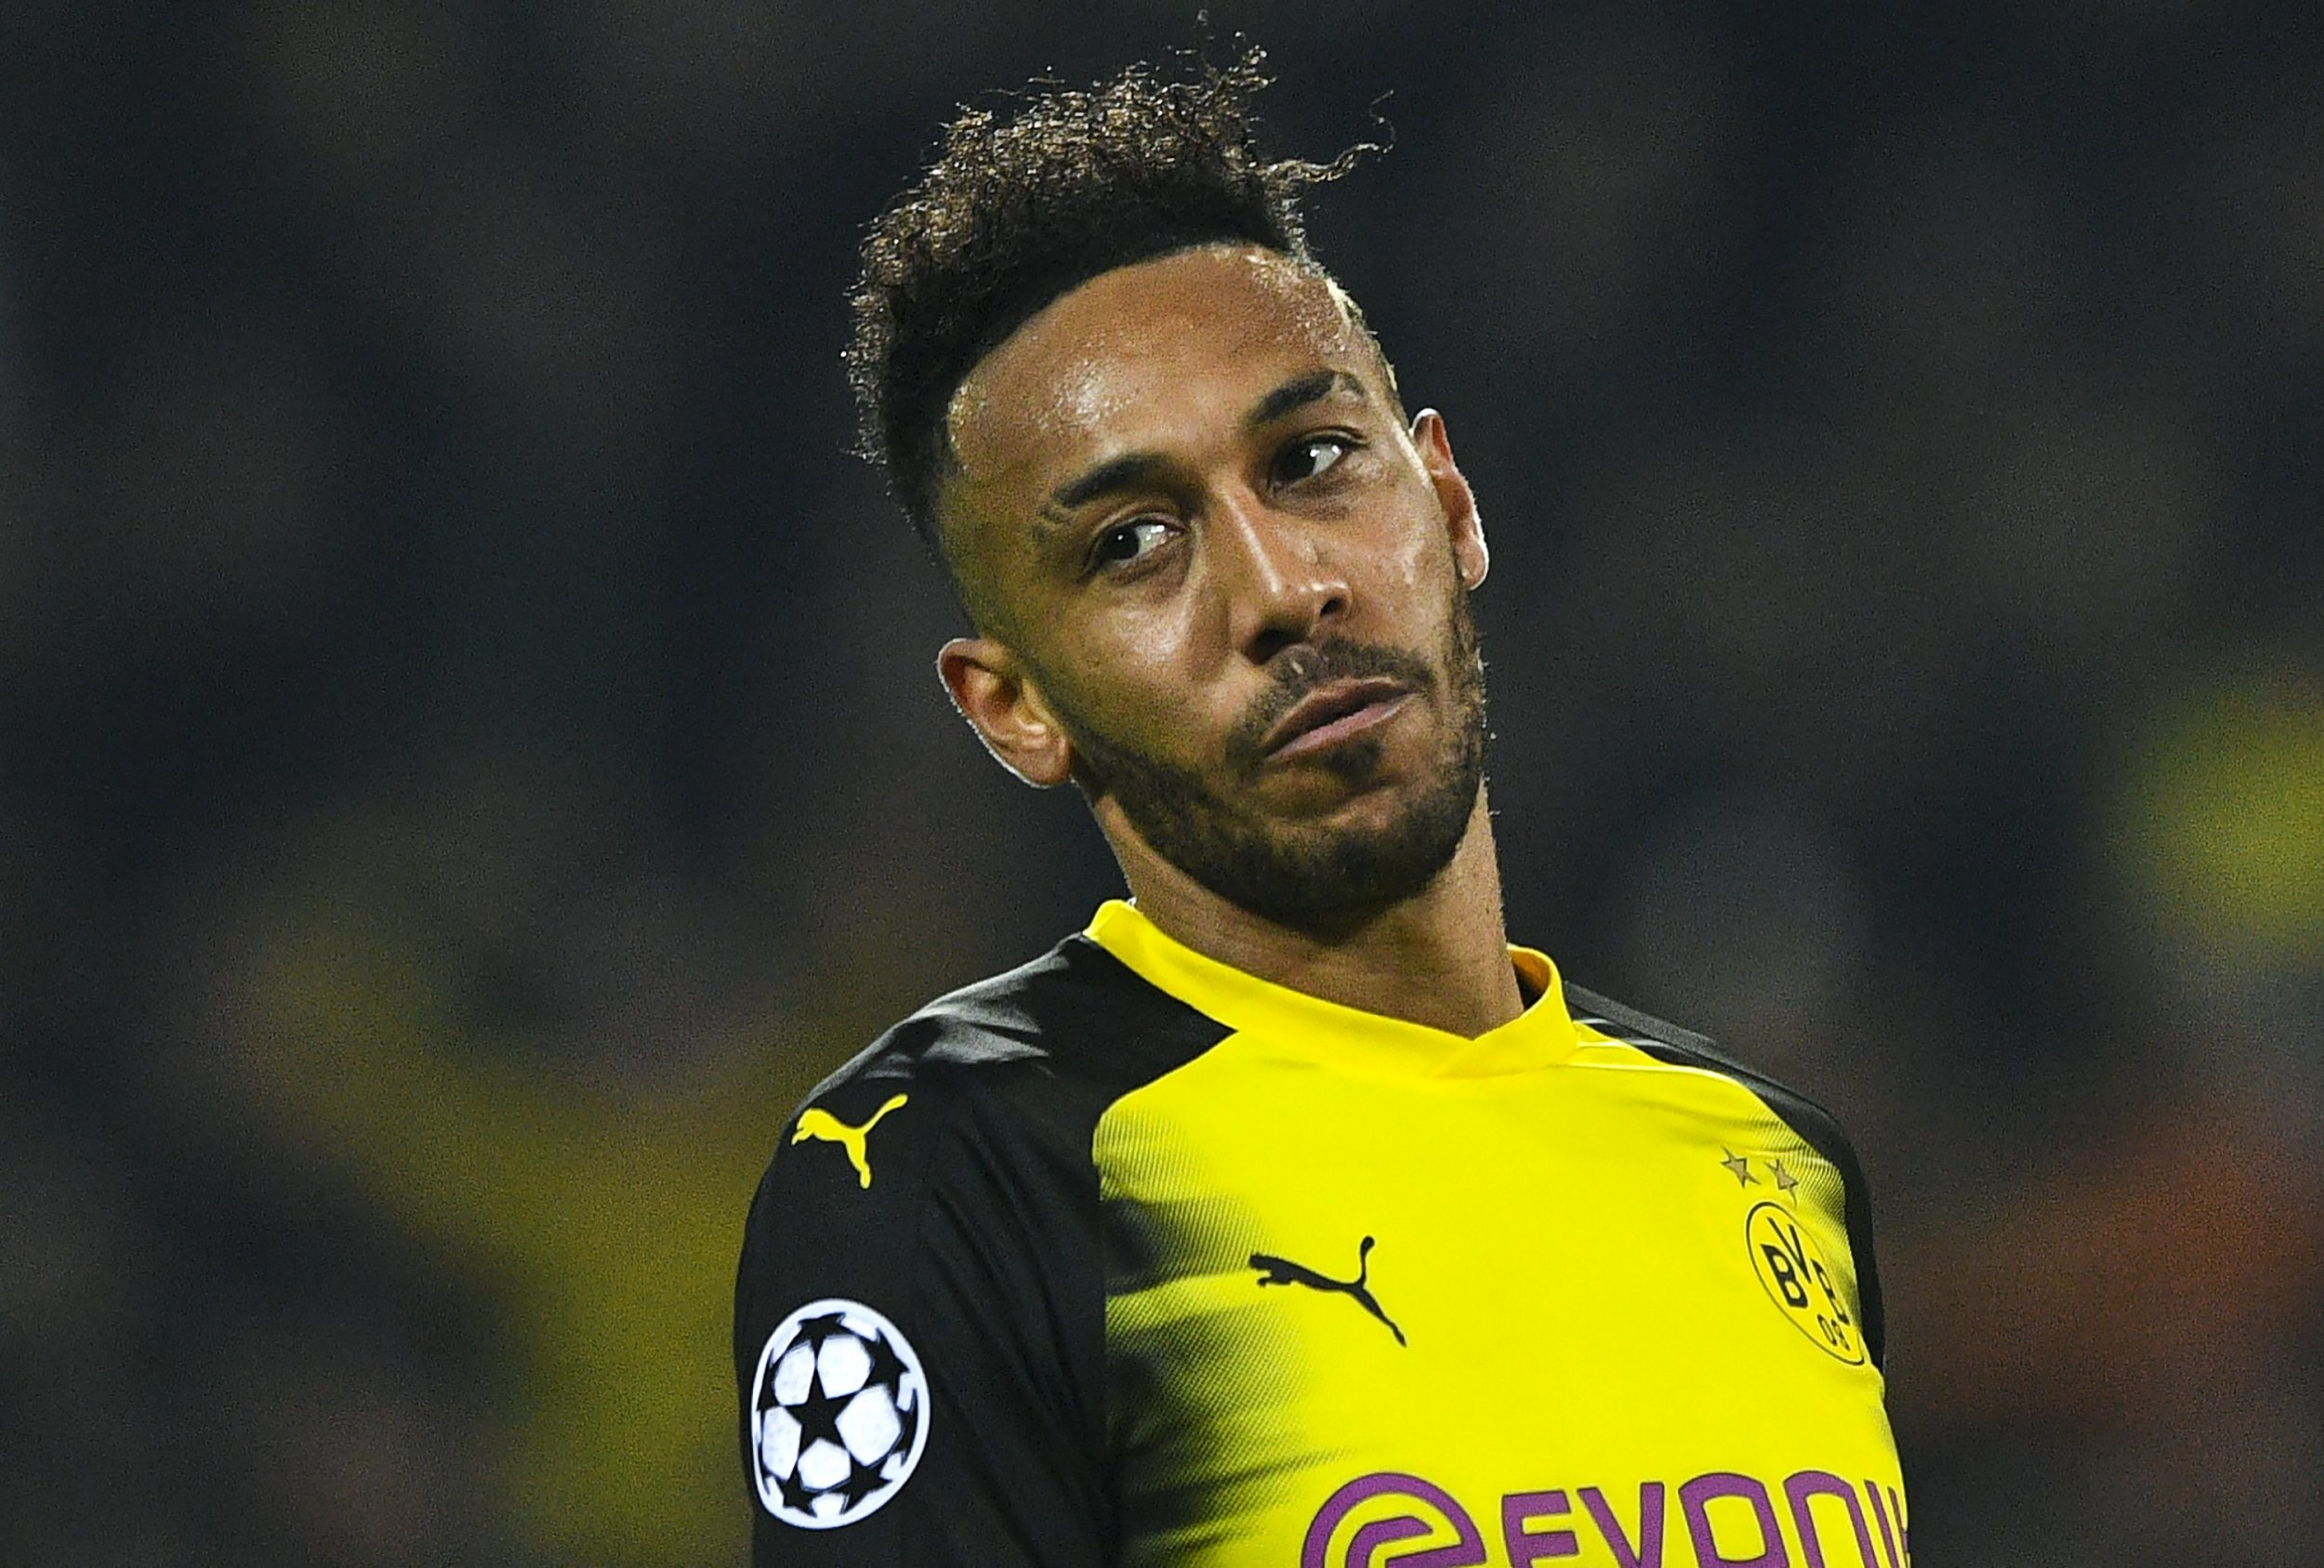 Pierre-Emerick Aubameyang looks dejected after missing a chance